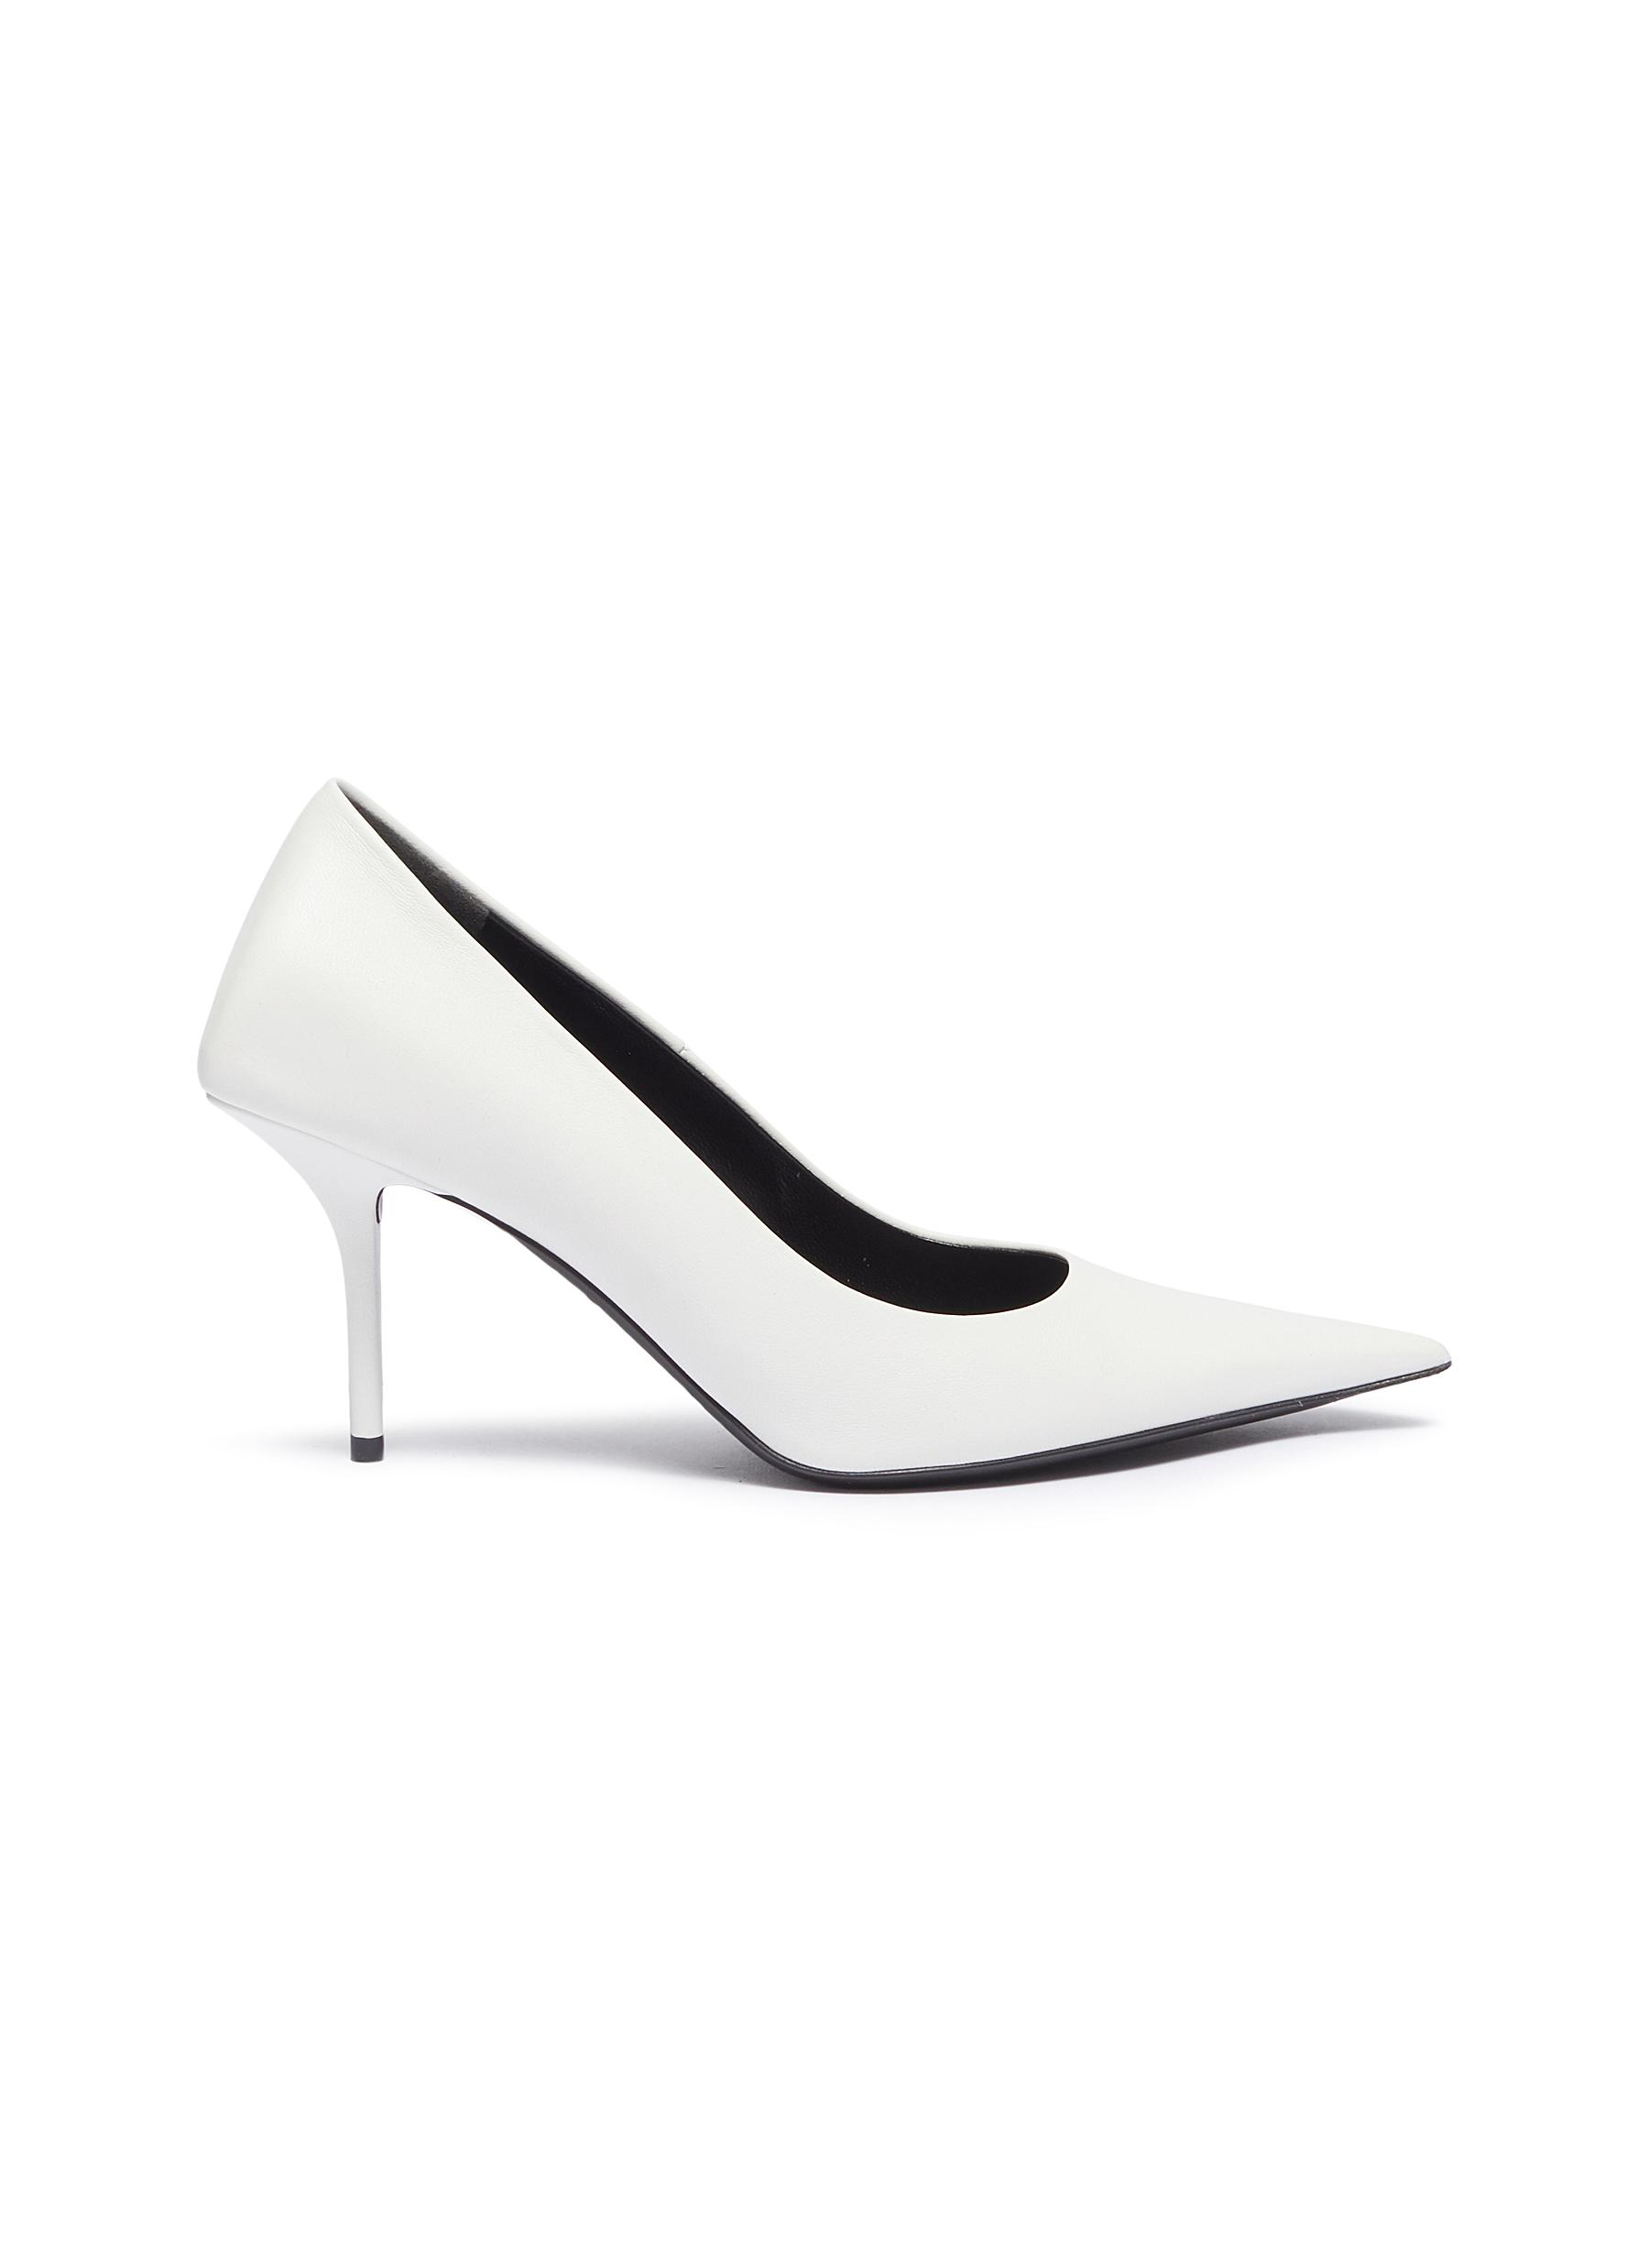 Square Knife leather pumps by Balenciaga